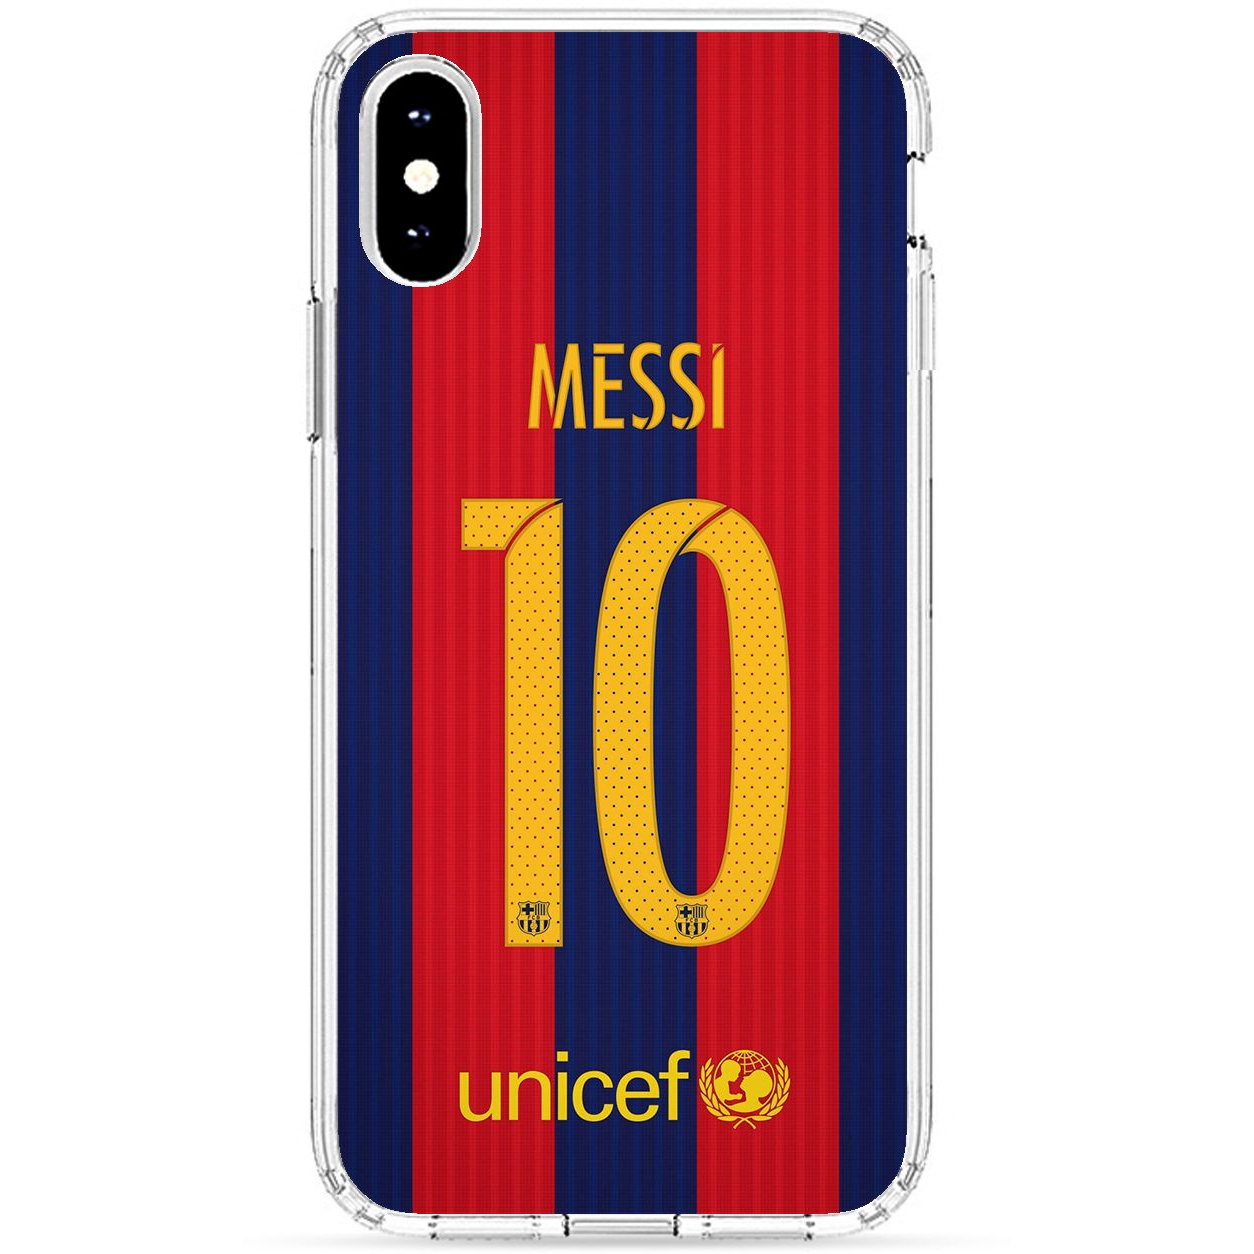 b90b78b6005 Buy Online Lionel Messi Jersey FCB Apple iPhone X Case(Multi Color) from  USA - Zifiti.com - Page